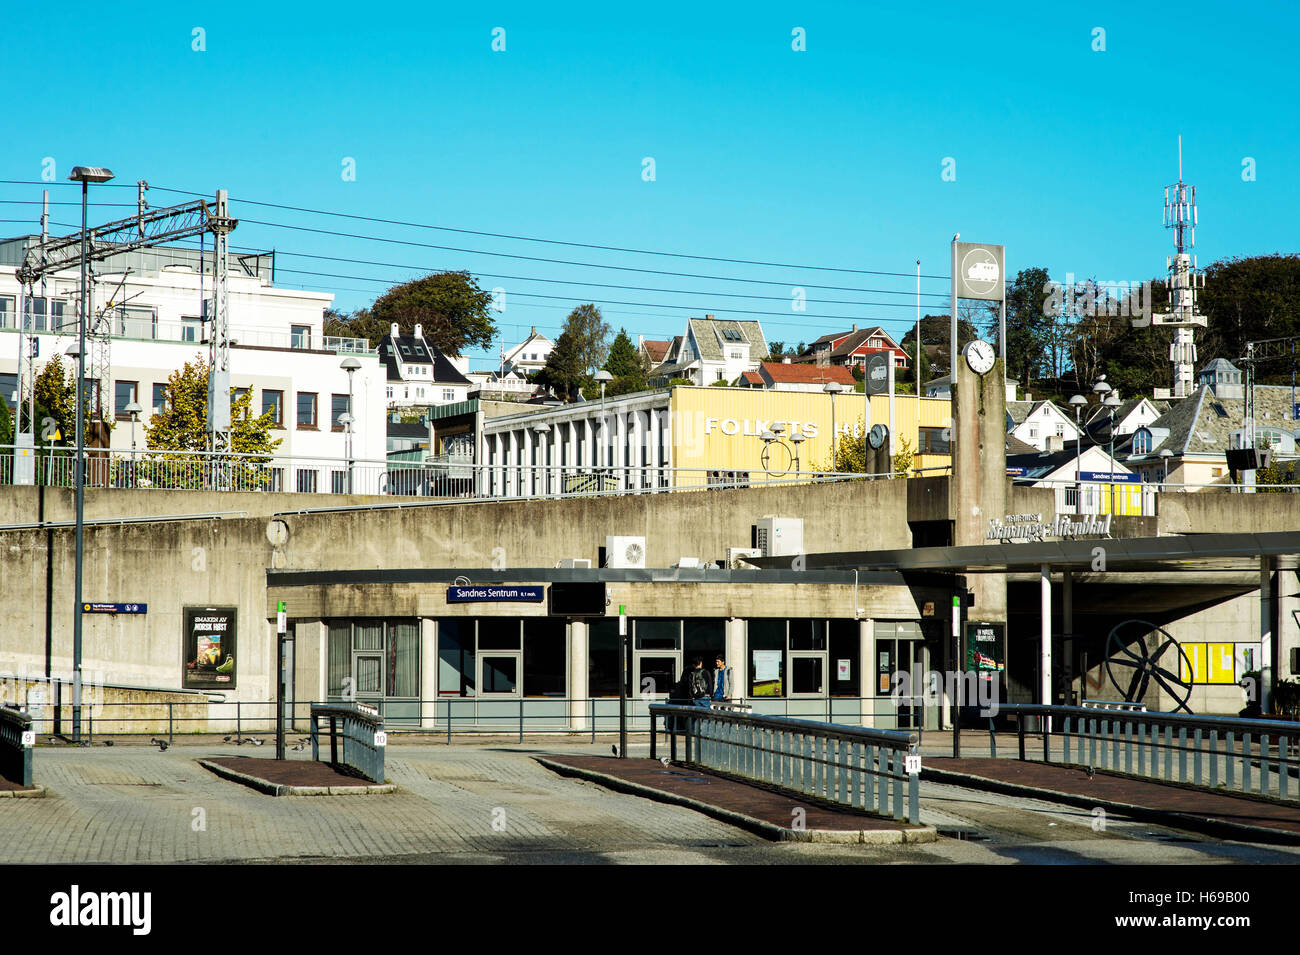 Sandnes Norway Central Town Bus or Coach Station - Stock Image